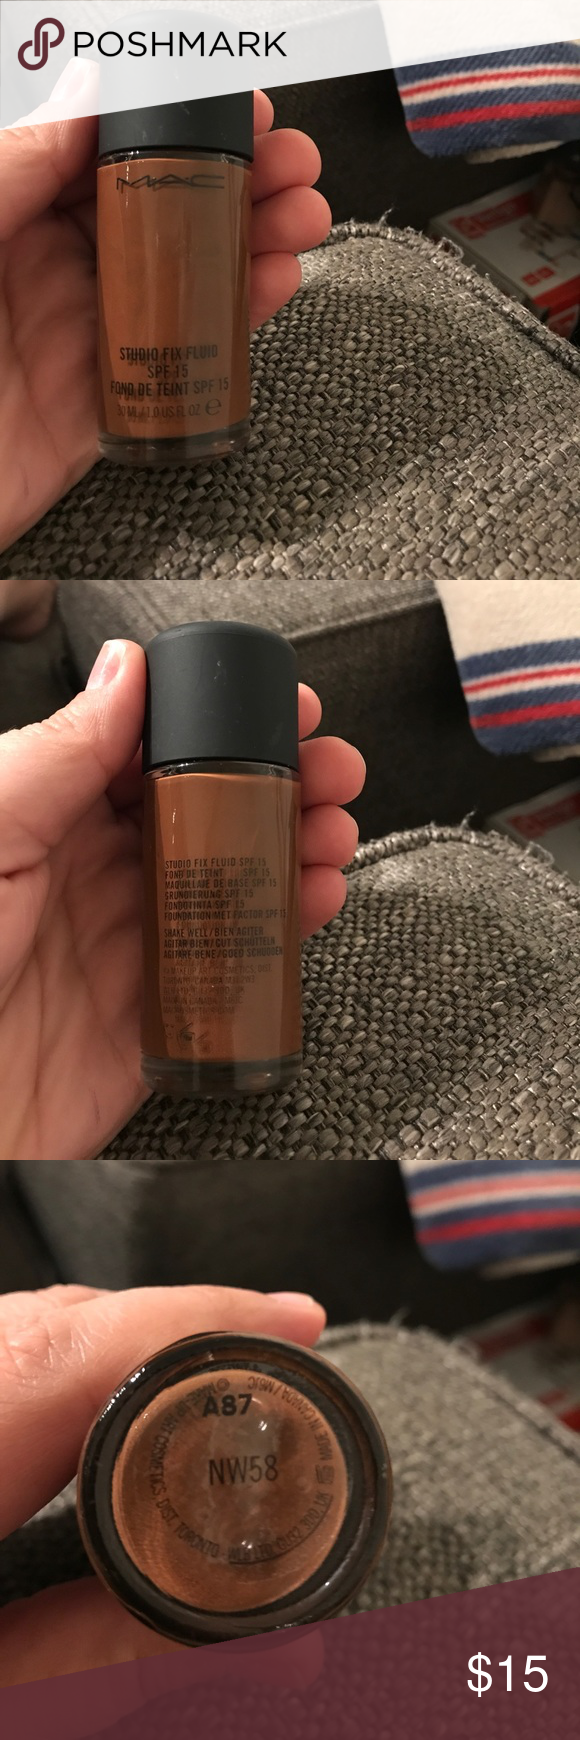 Mac Studio Fix Foundation New Without Box, Color NW 58